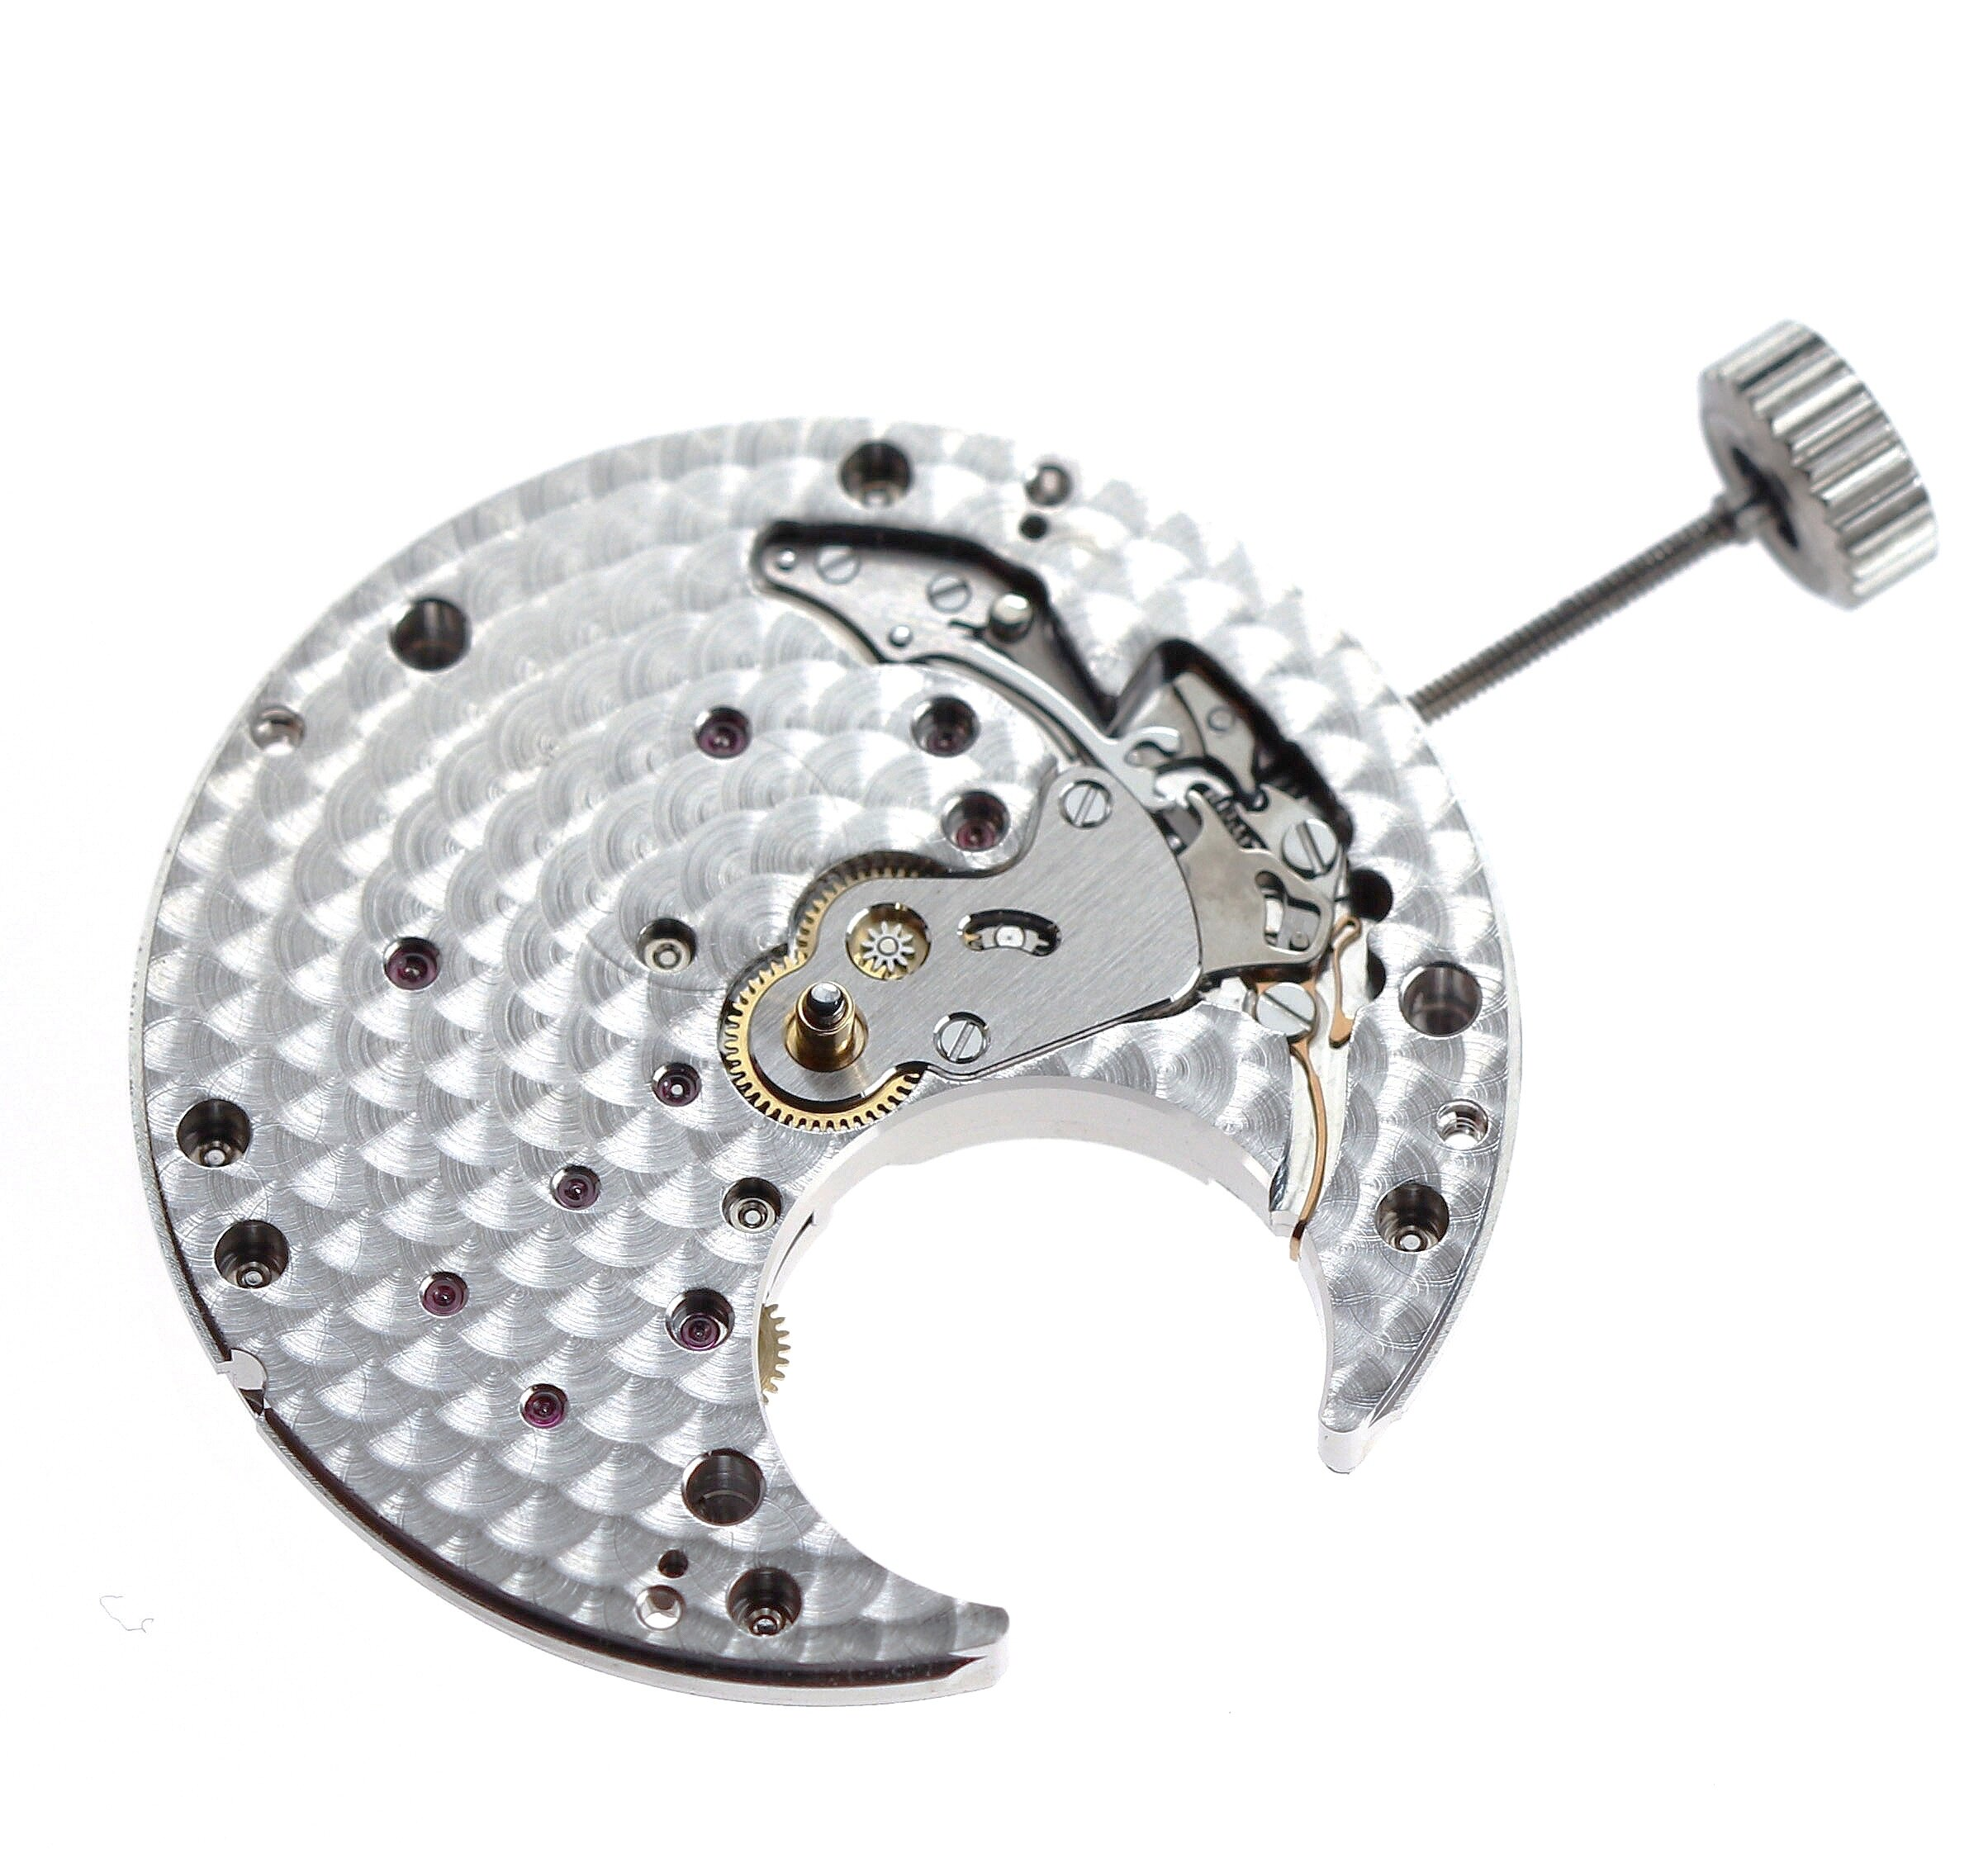 The flying tourbillon assembly removed viewed from the front of the movement